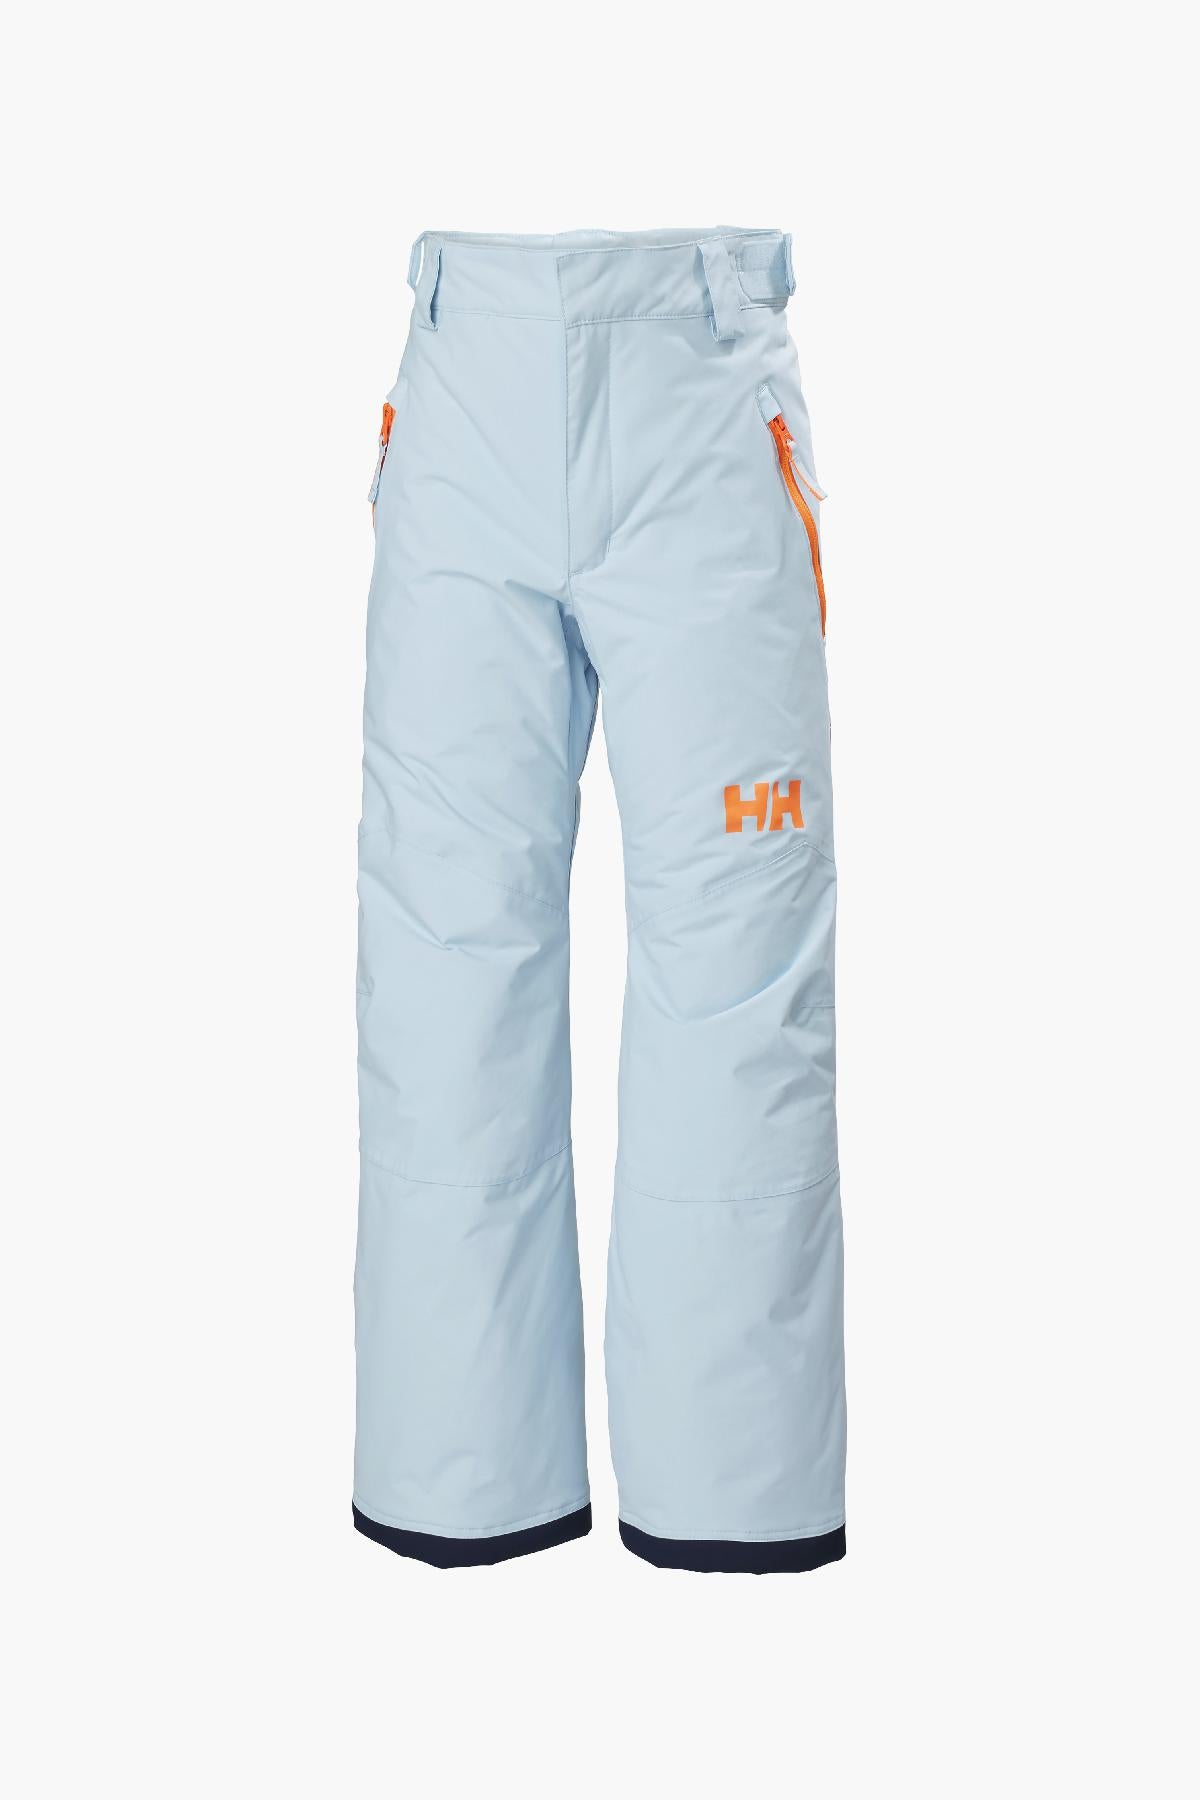 Helly Hansen Kids Snowpant Legendary - Ice Blue